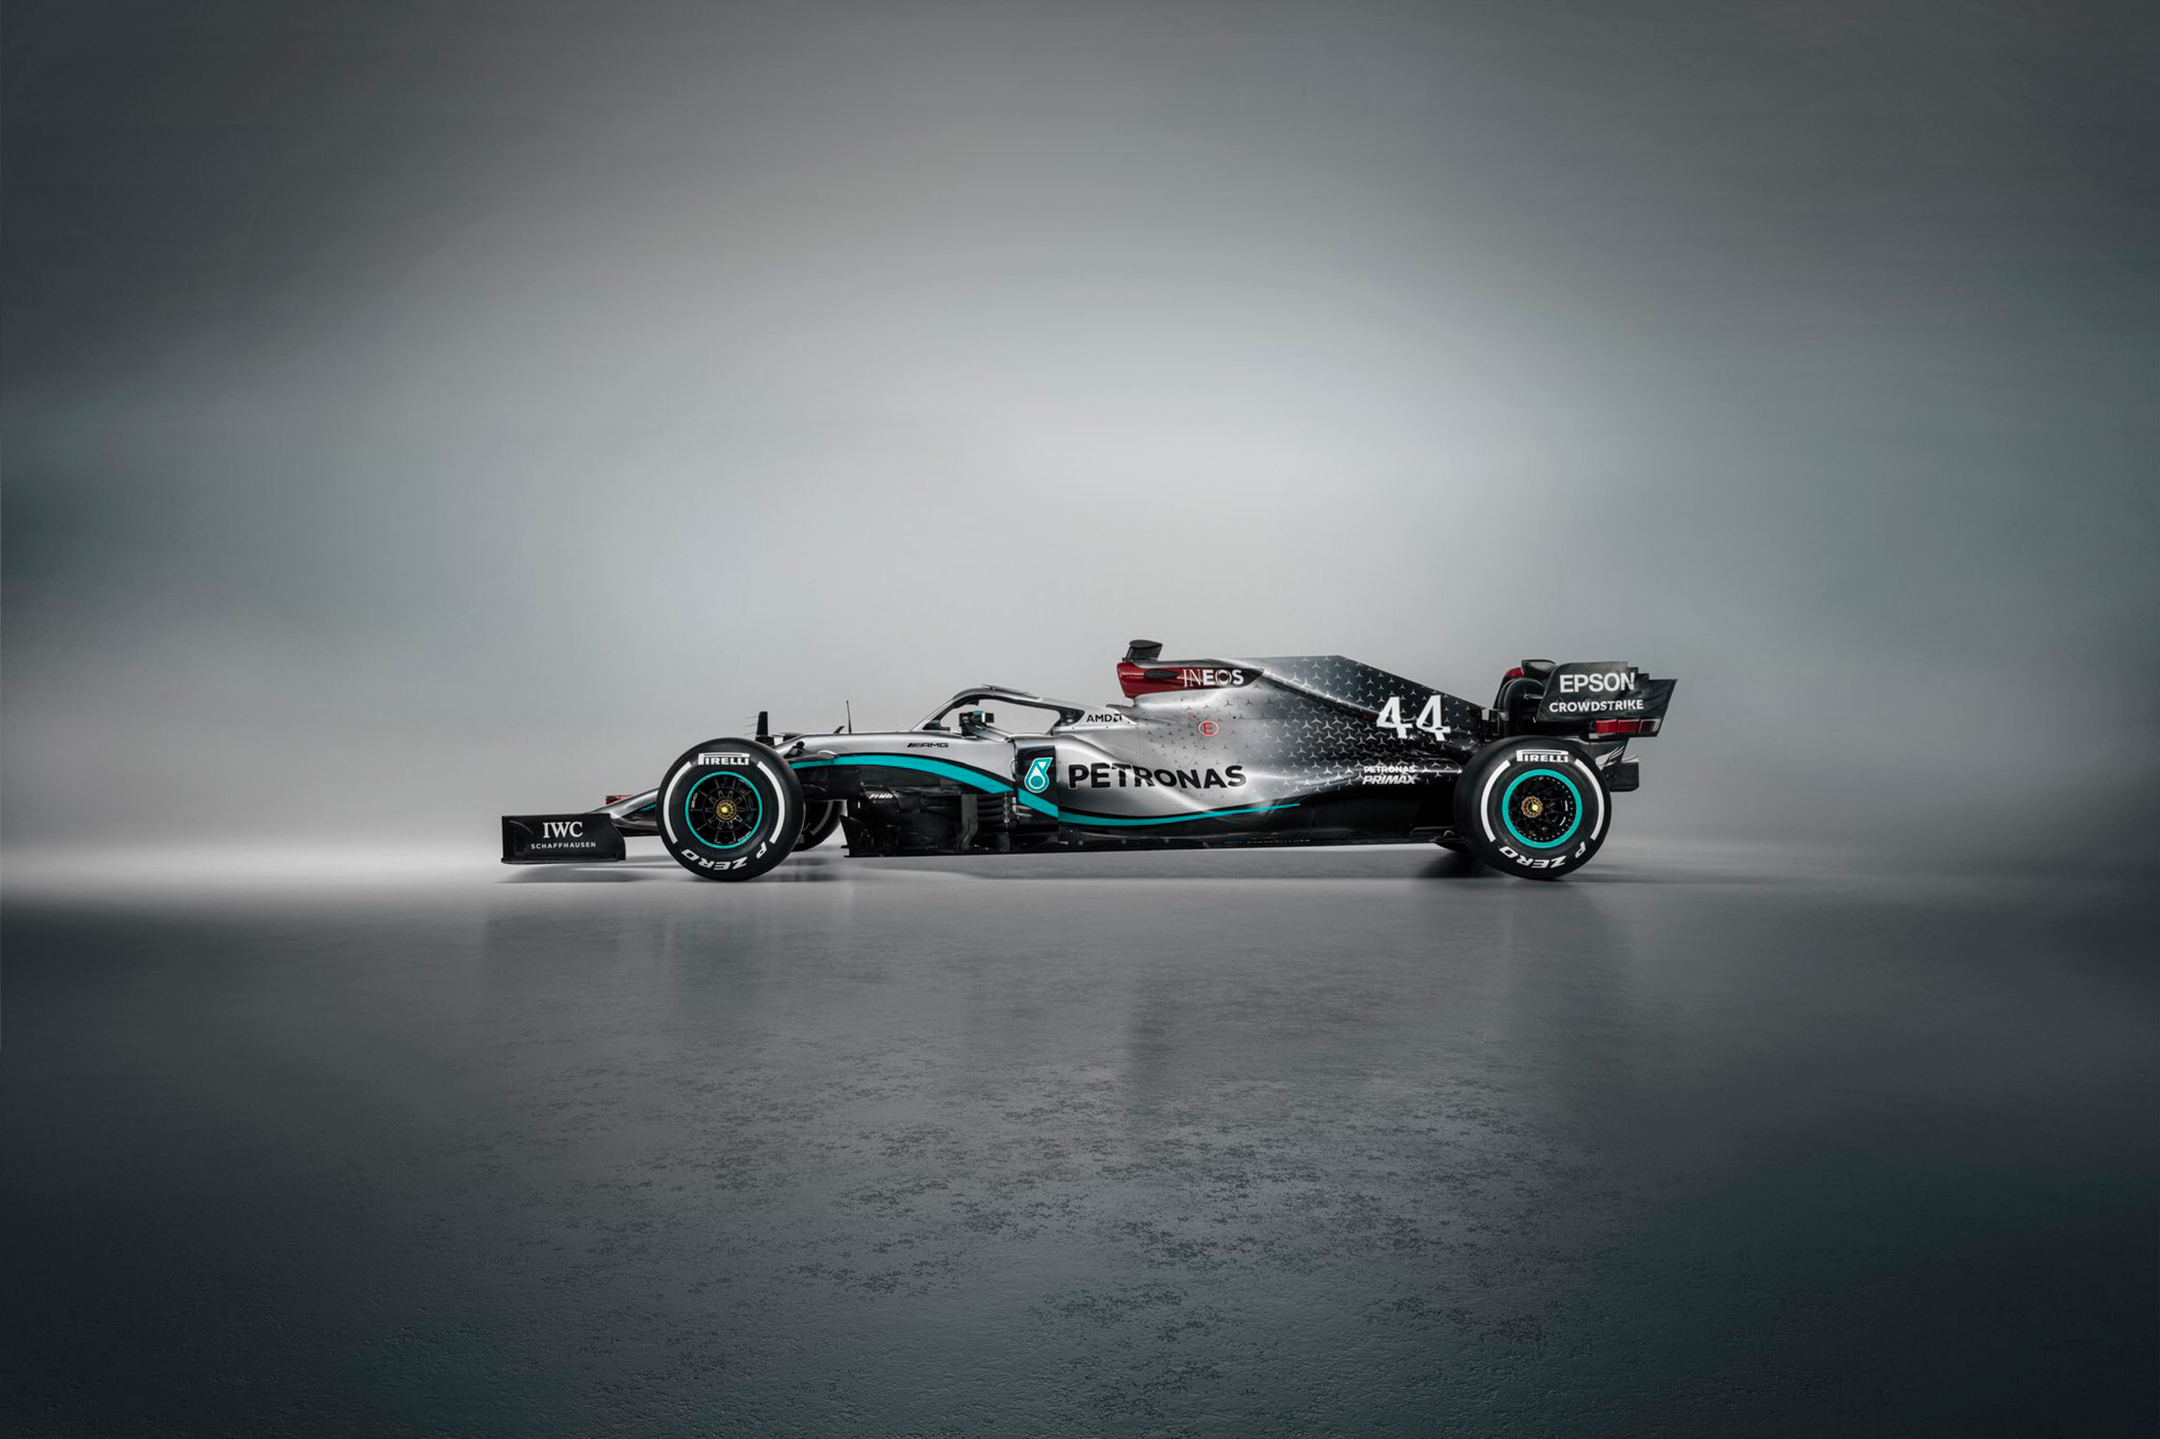 F1 - Mercedes-AMG F1 Team - W11 - 2020 - side-face